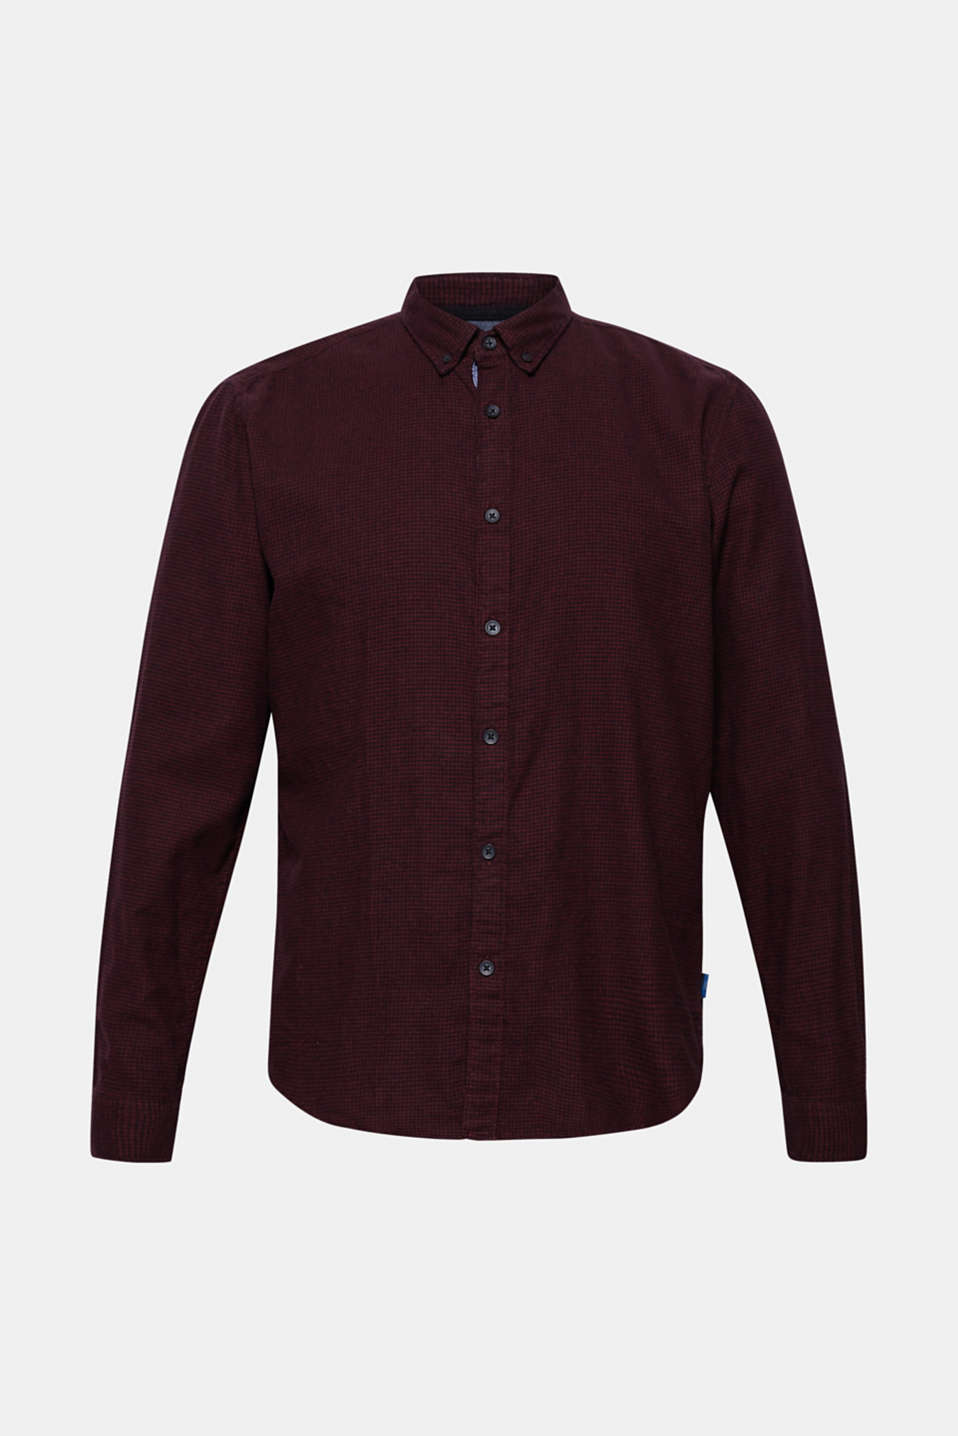 Shirts woven Slim fit, BORDEAUX RED, detail image number 6